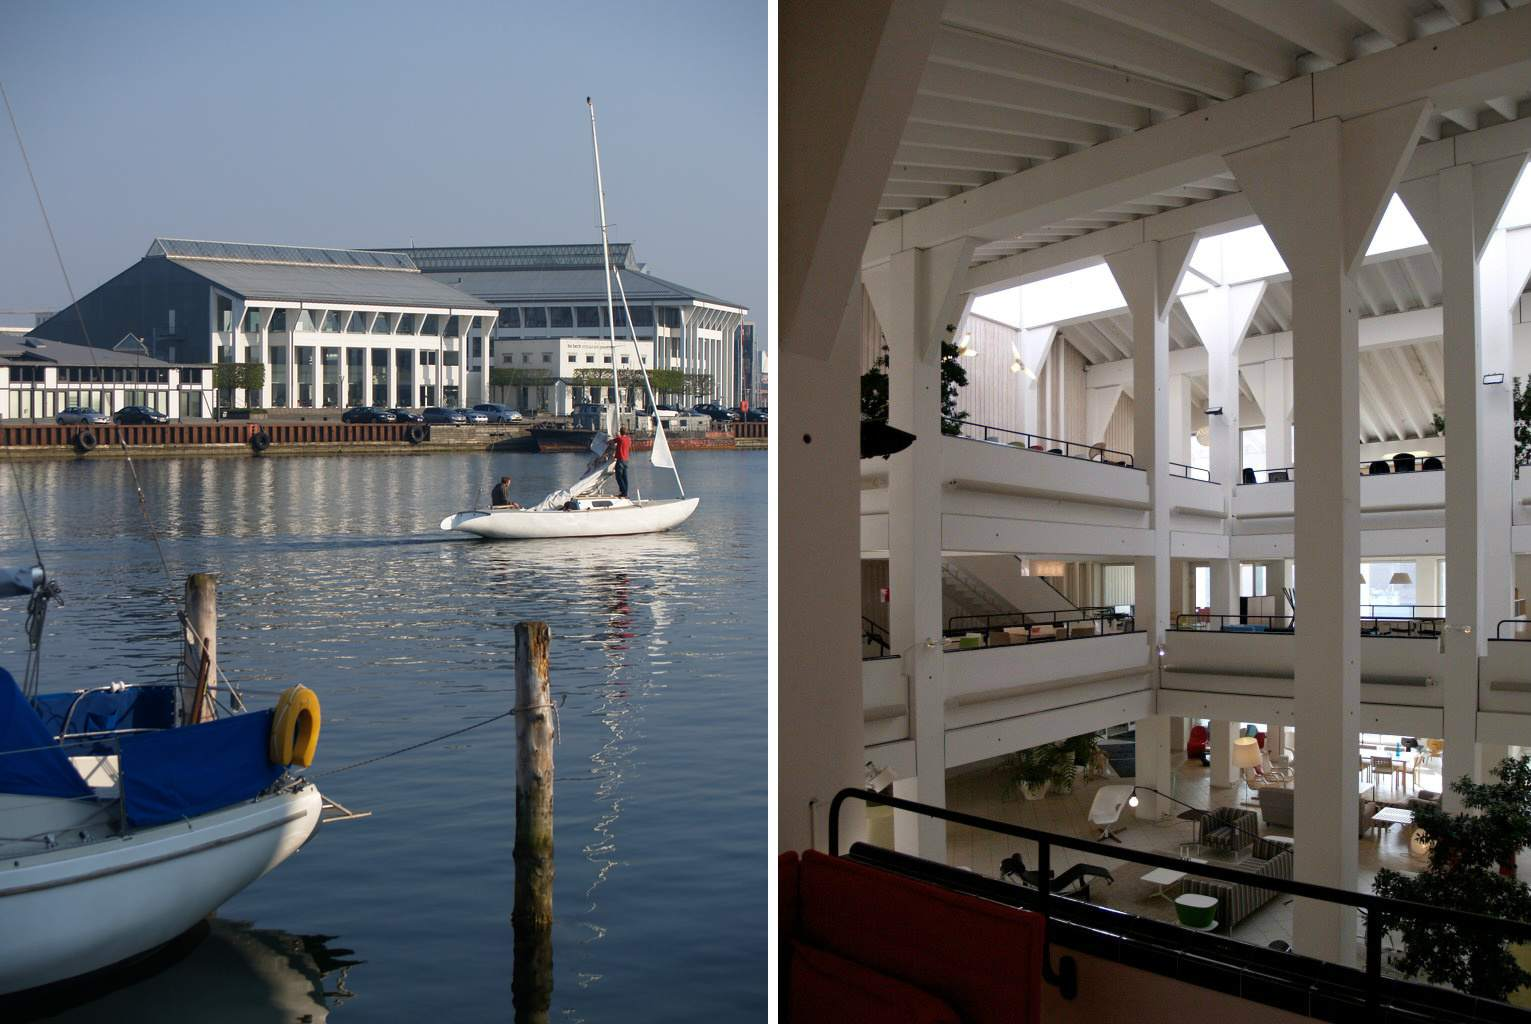 two photos, left are buildings near water and boats; right is spacious interior gallery with columned balconies